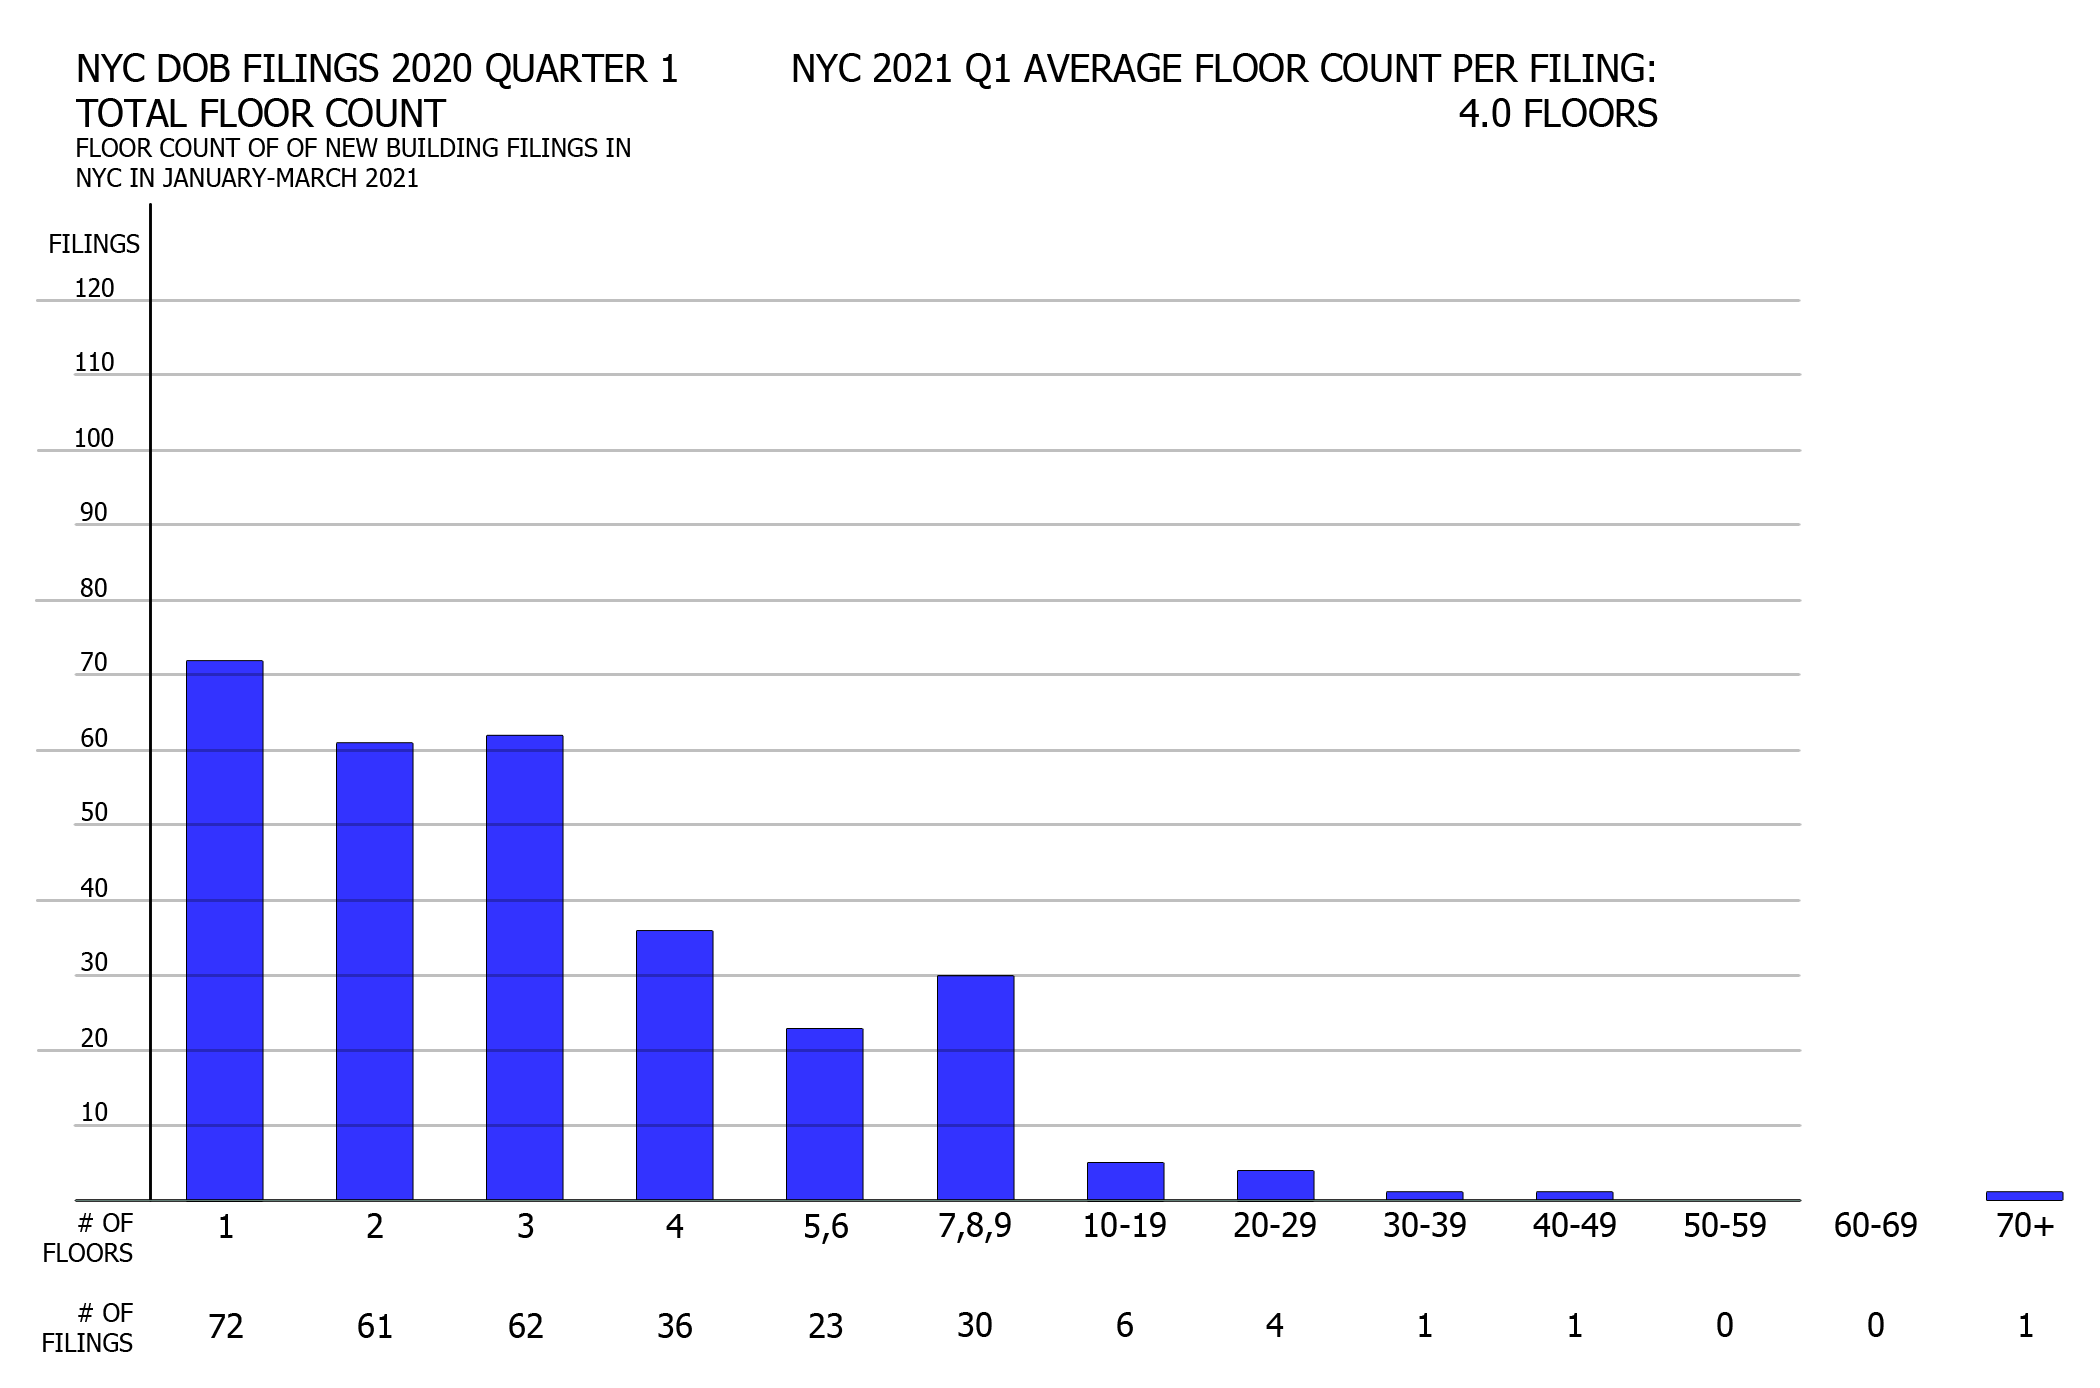 NYC DOB filings in first quarter of 2021 by proposed floor count. Credit: Vitali Ogorodnikov